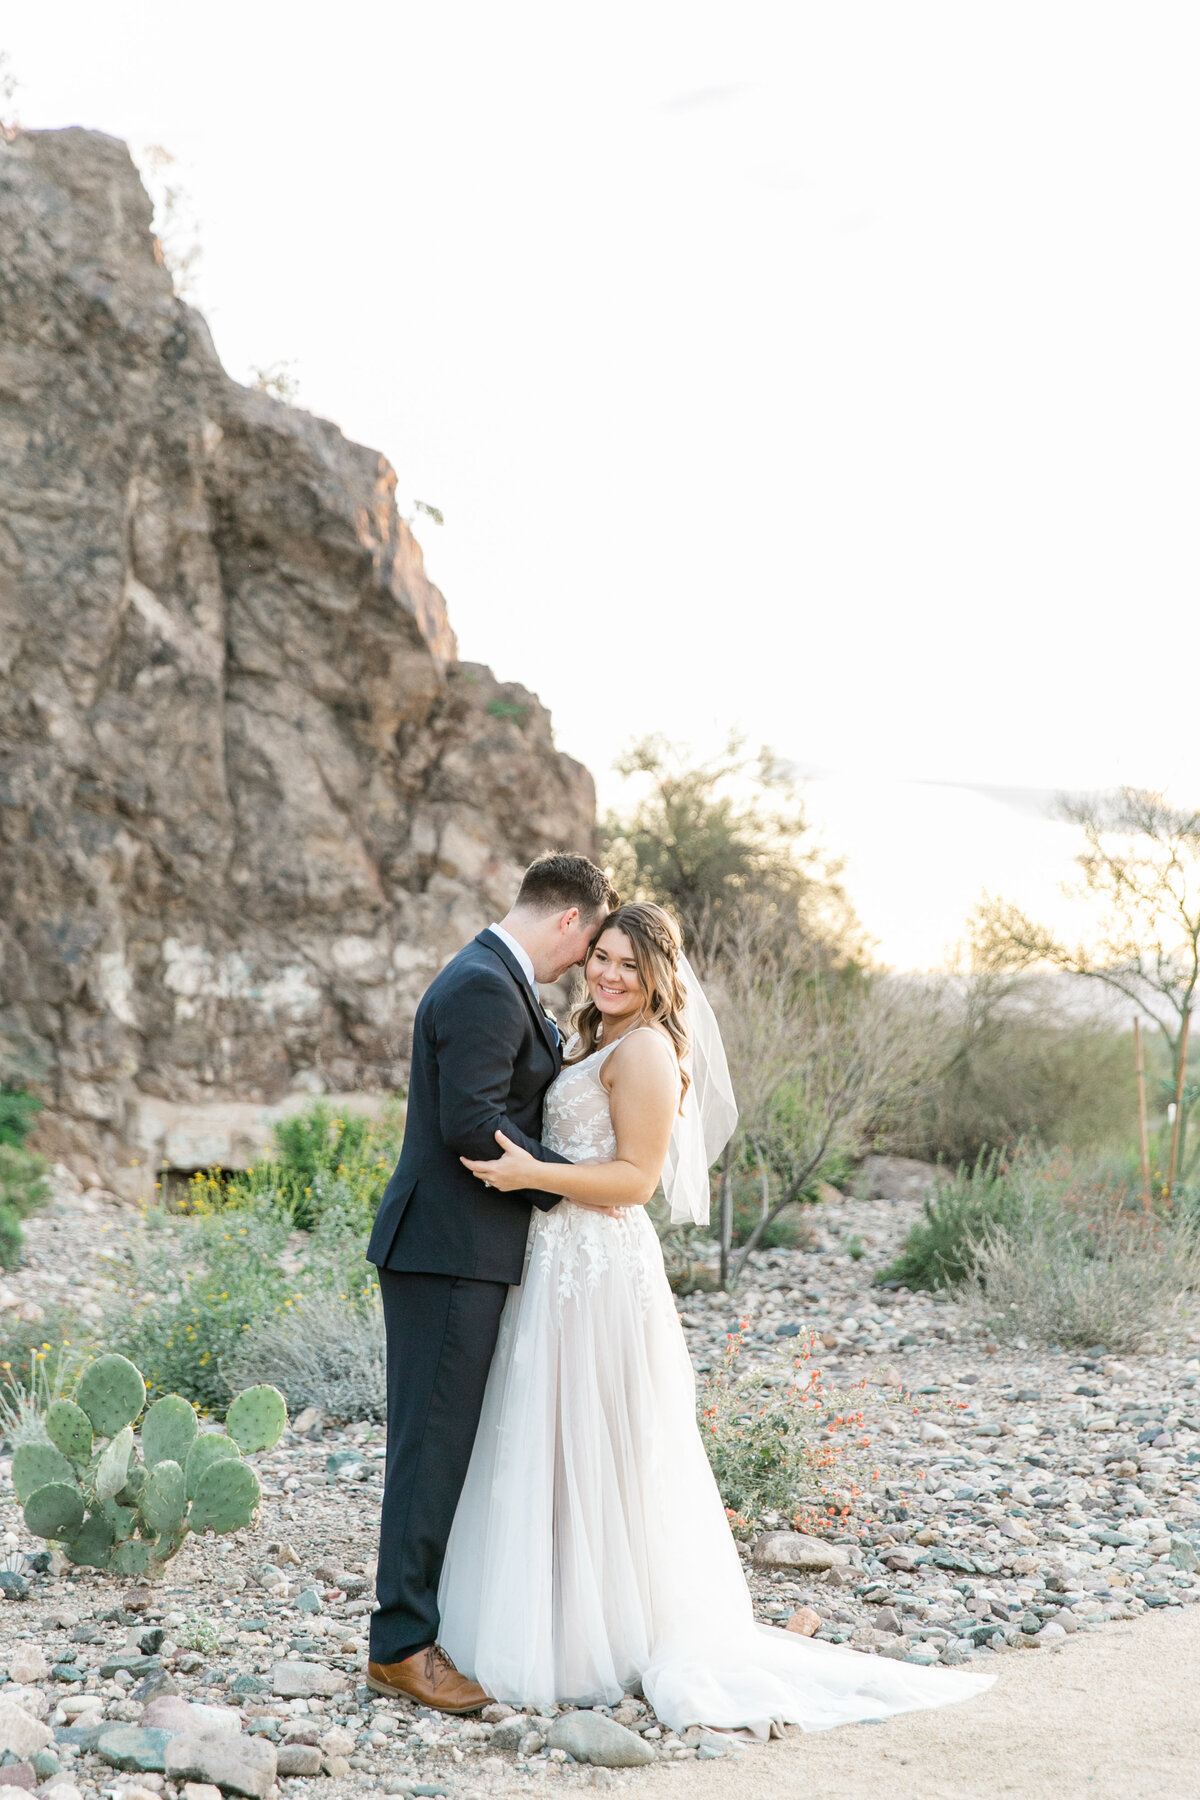 Karlie Colleen Photography - Arizona Backyard wedding - Brittney & Josh-233